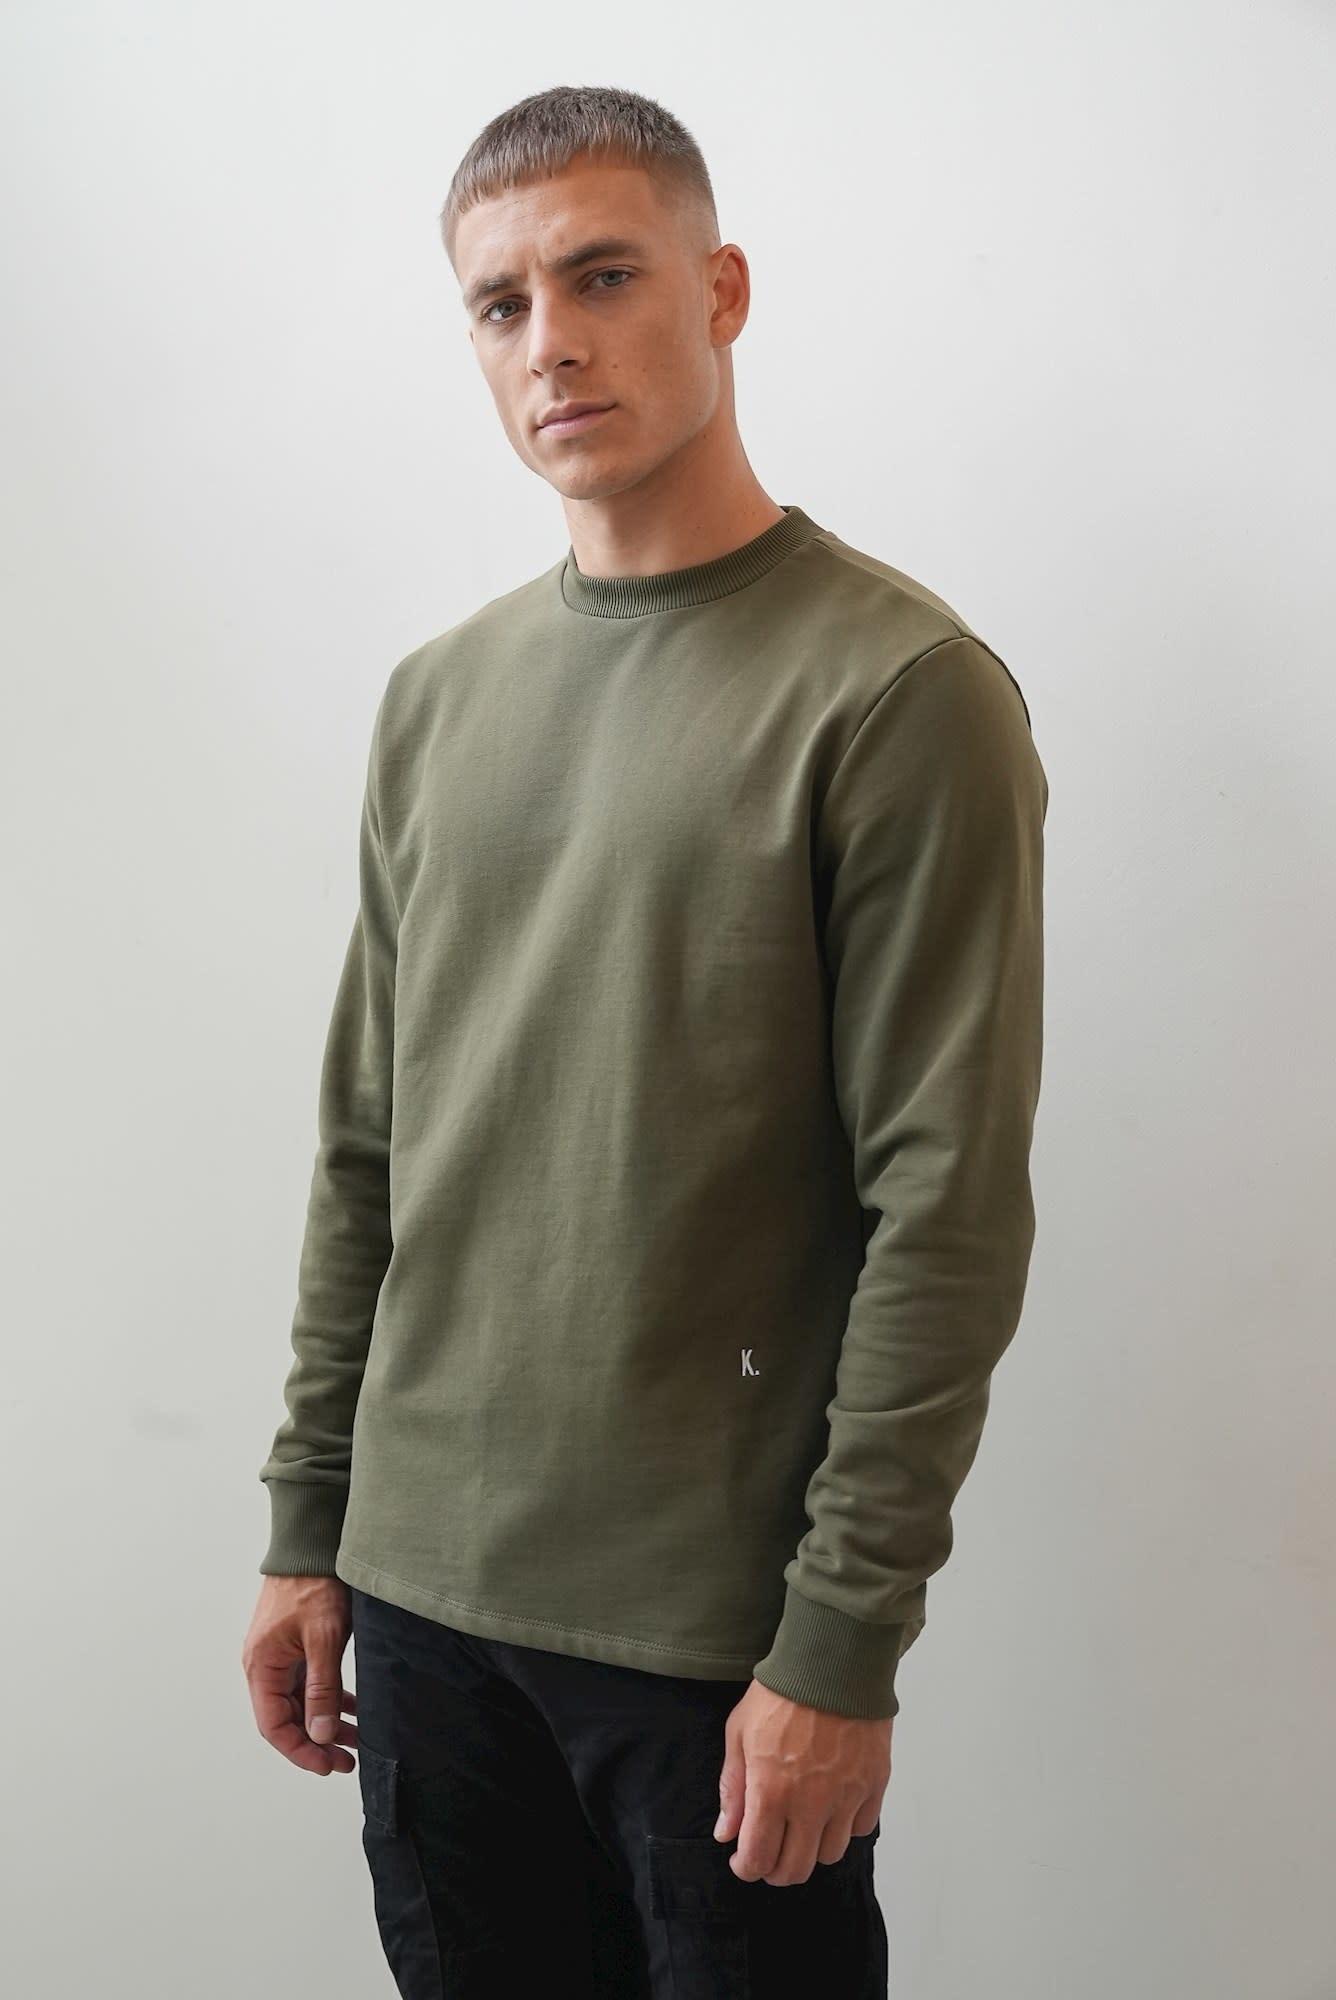 Kultivate Kultivate Jack Sweat Army Green